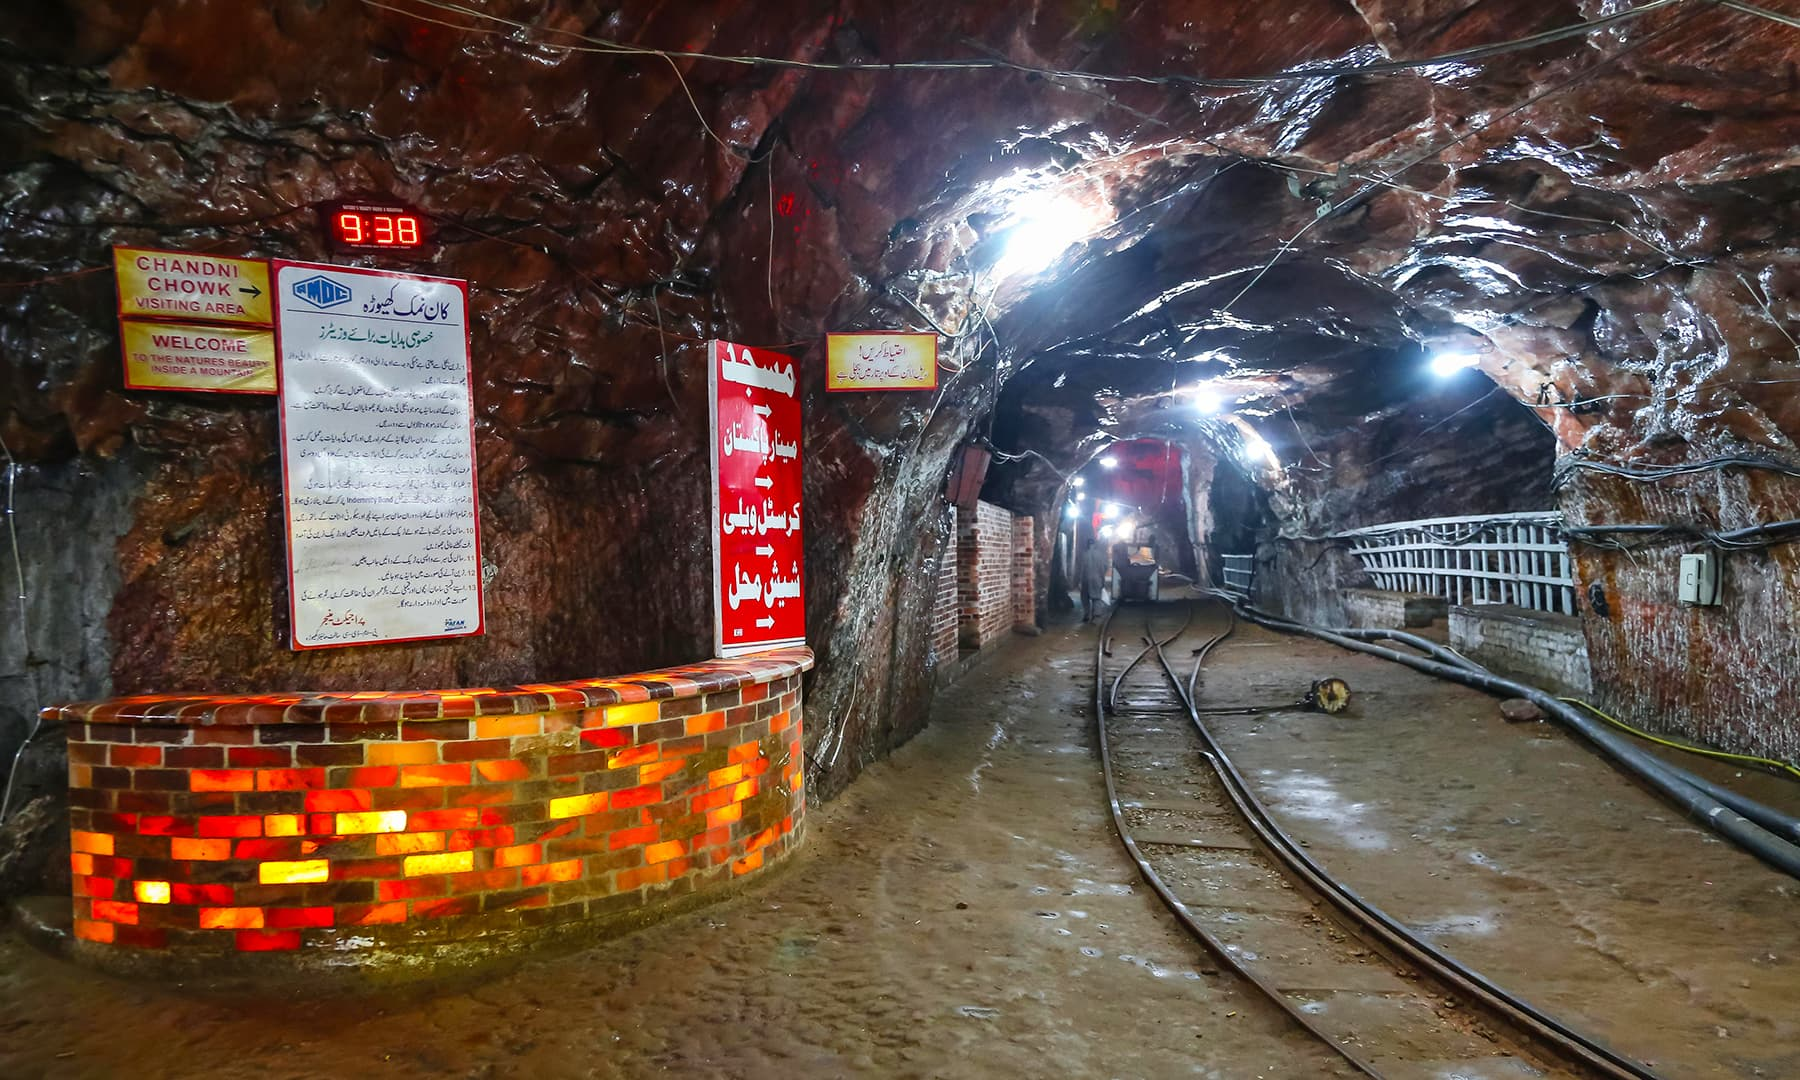 Chandni Chowk inside the Khewra Salt Mines visiting area.